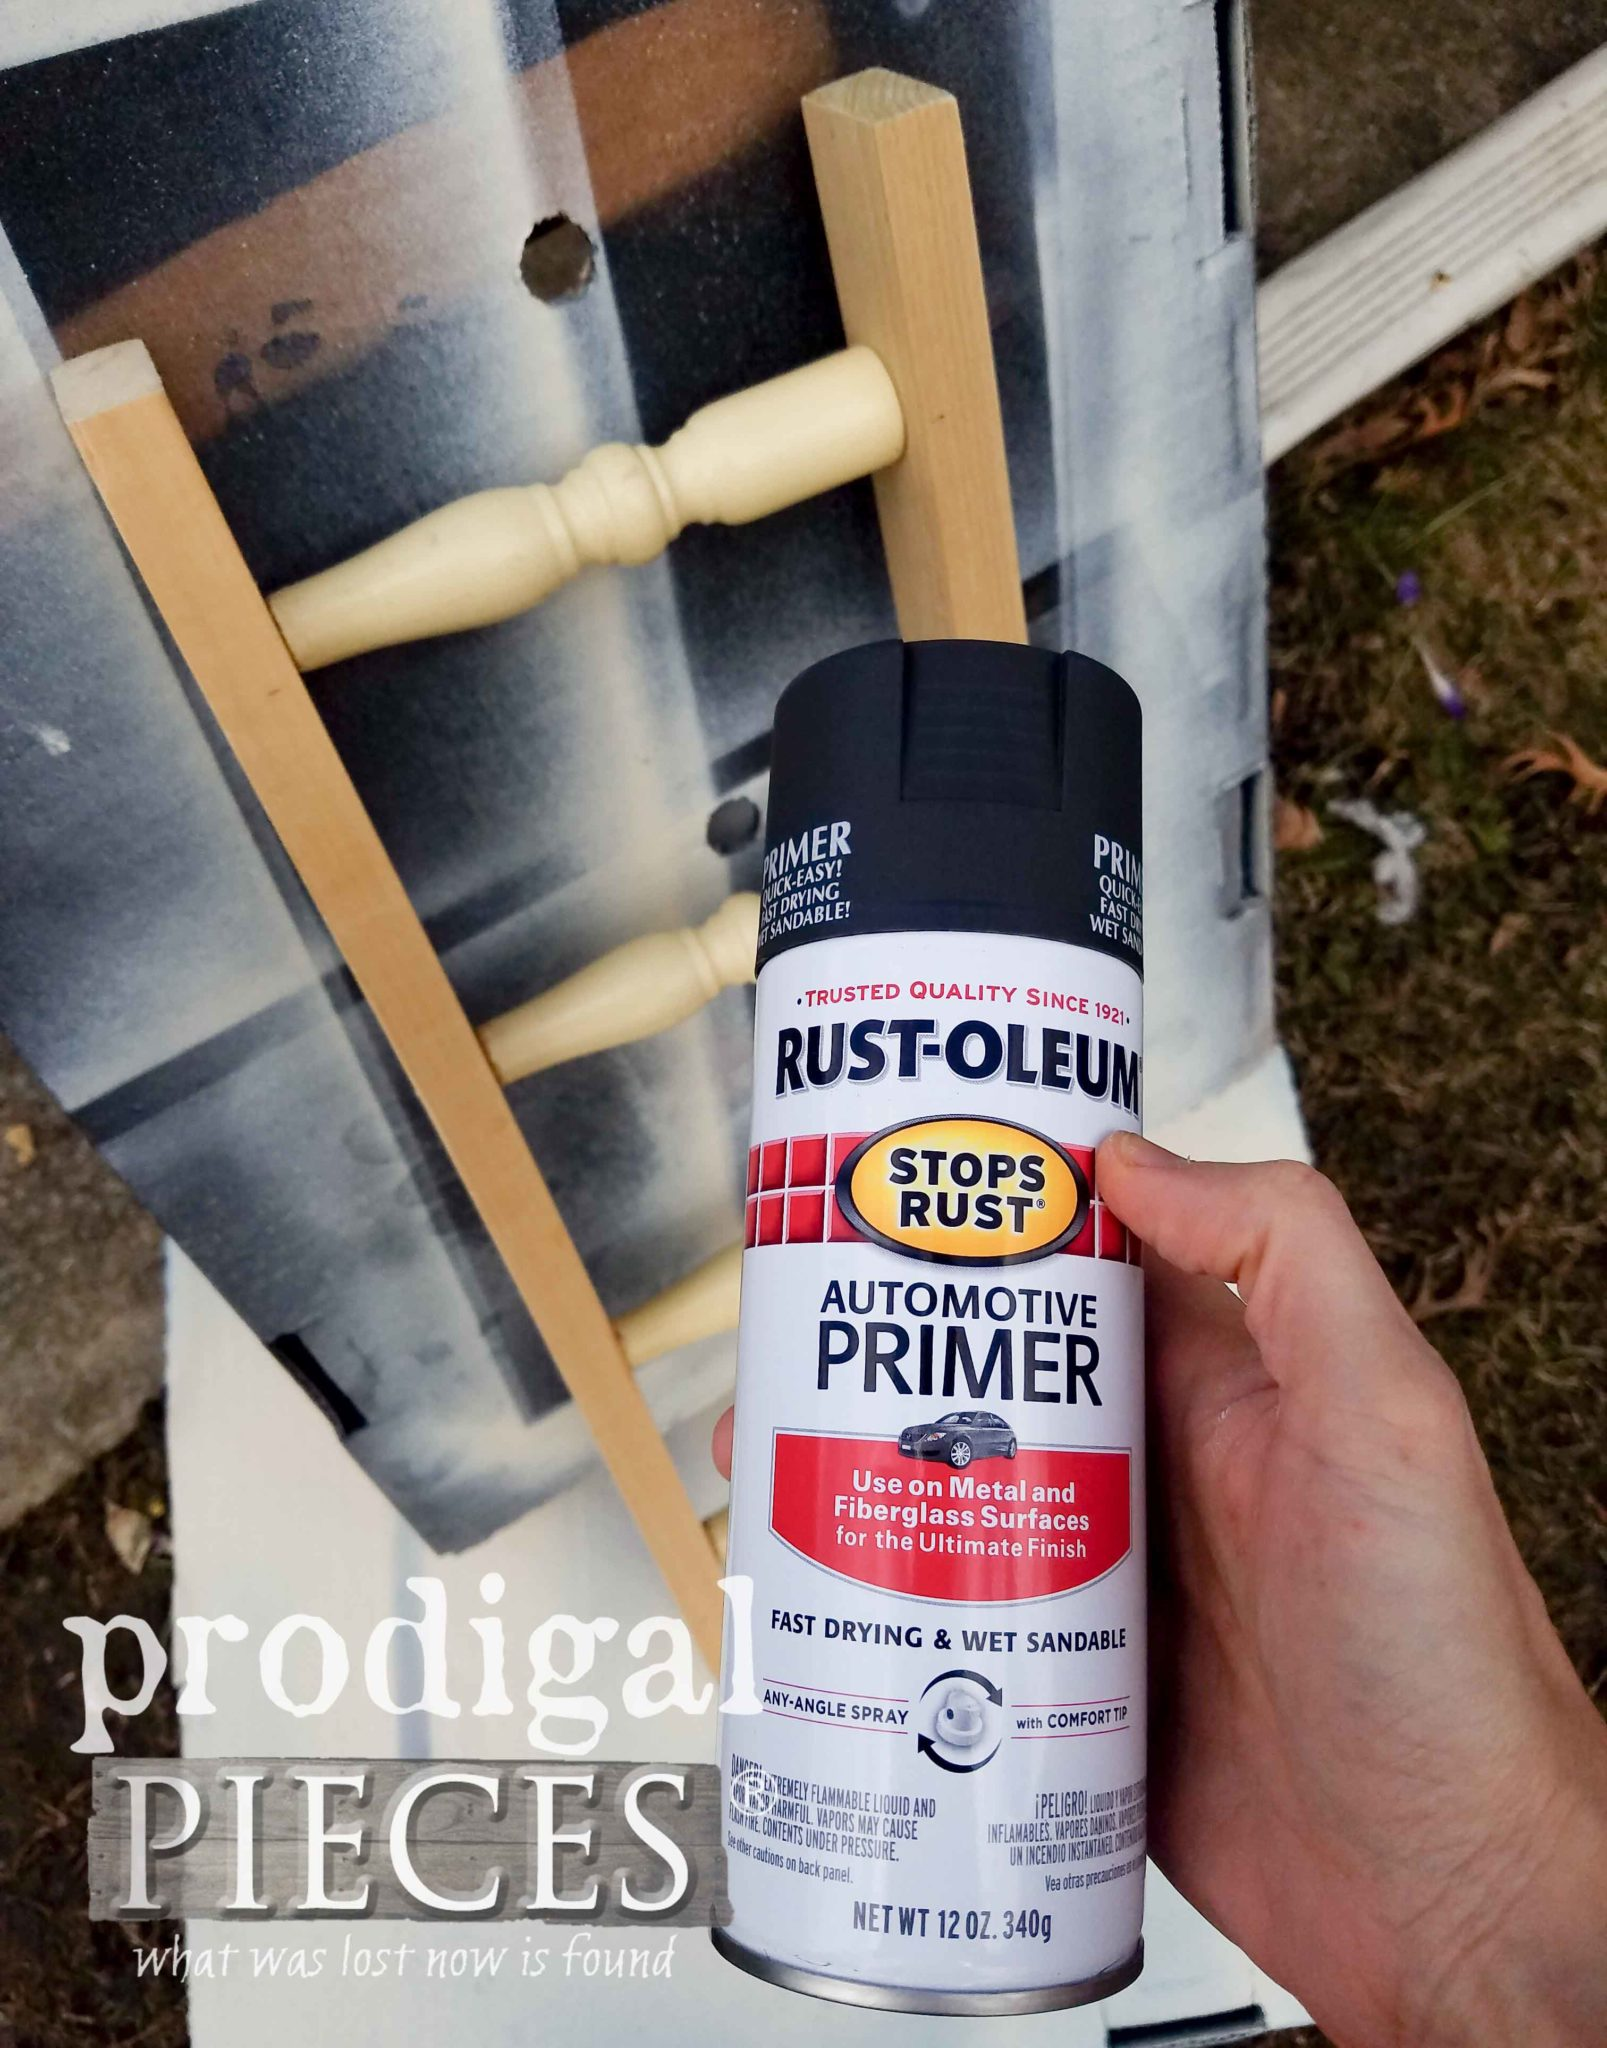 Flat Gray Spray Paint ~ Automotive Primer ~ for Farmhouse Decor | prodigalpieces.com